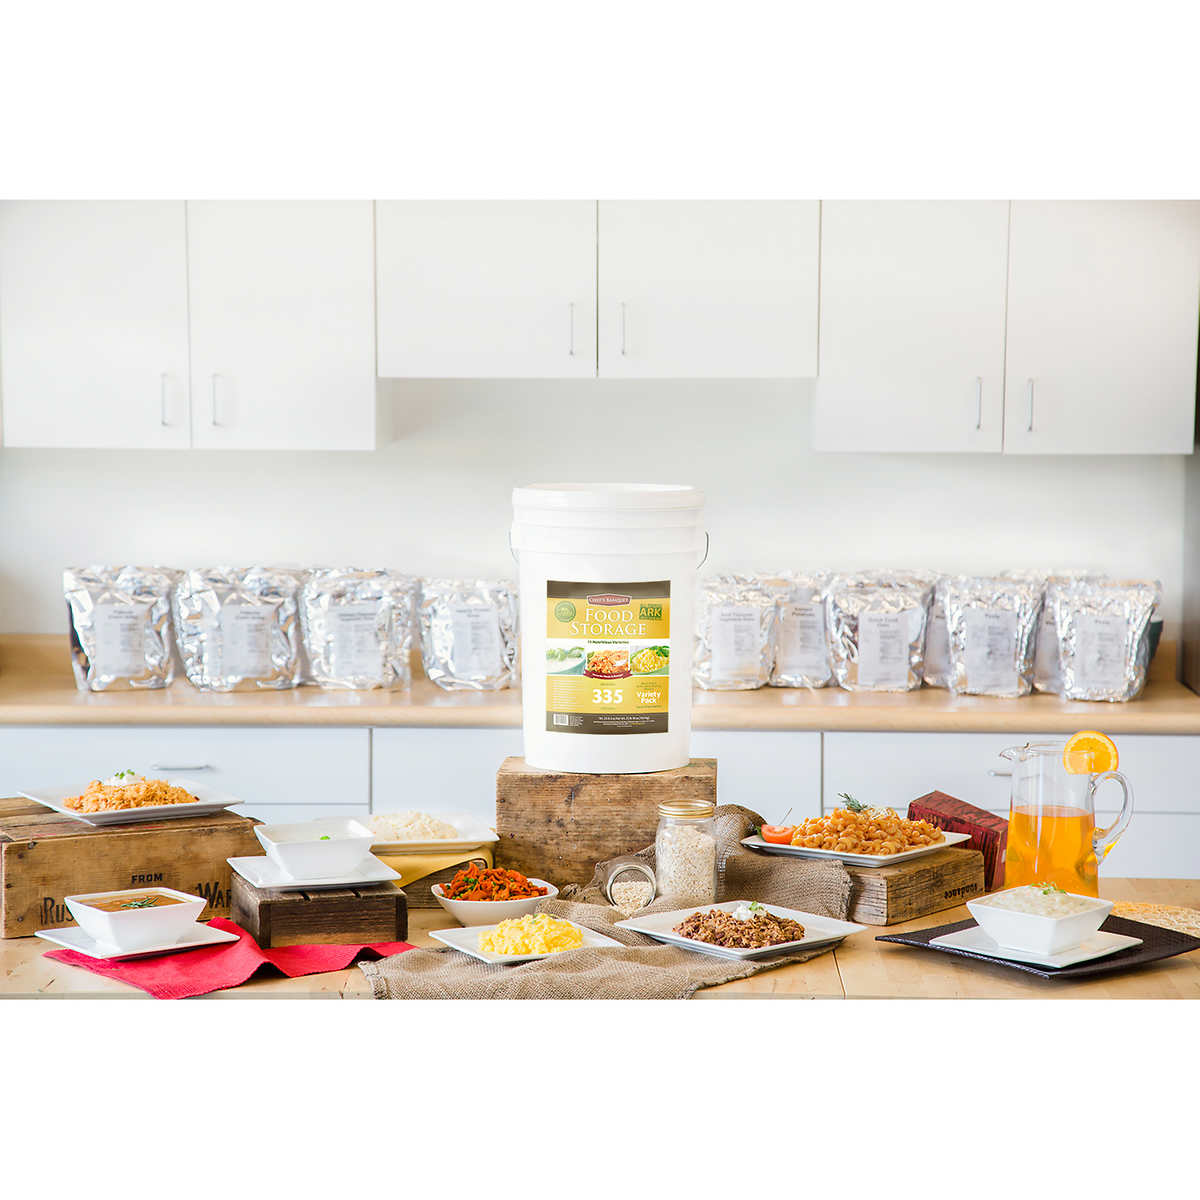 Chef's Banquet Emergency Food Storage - ARK (All-purpose Readiness Kits)